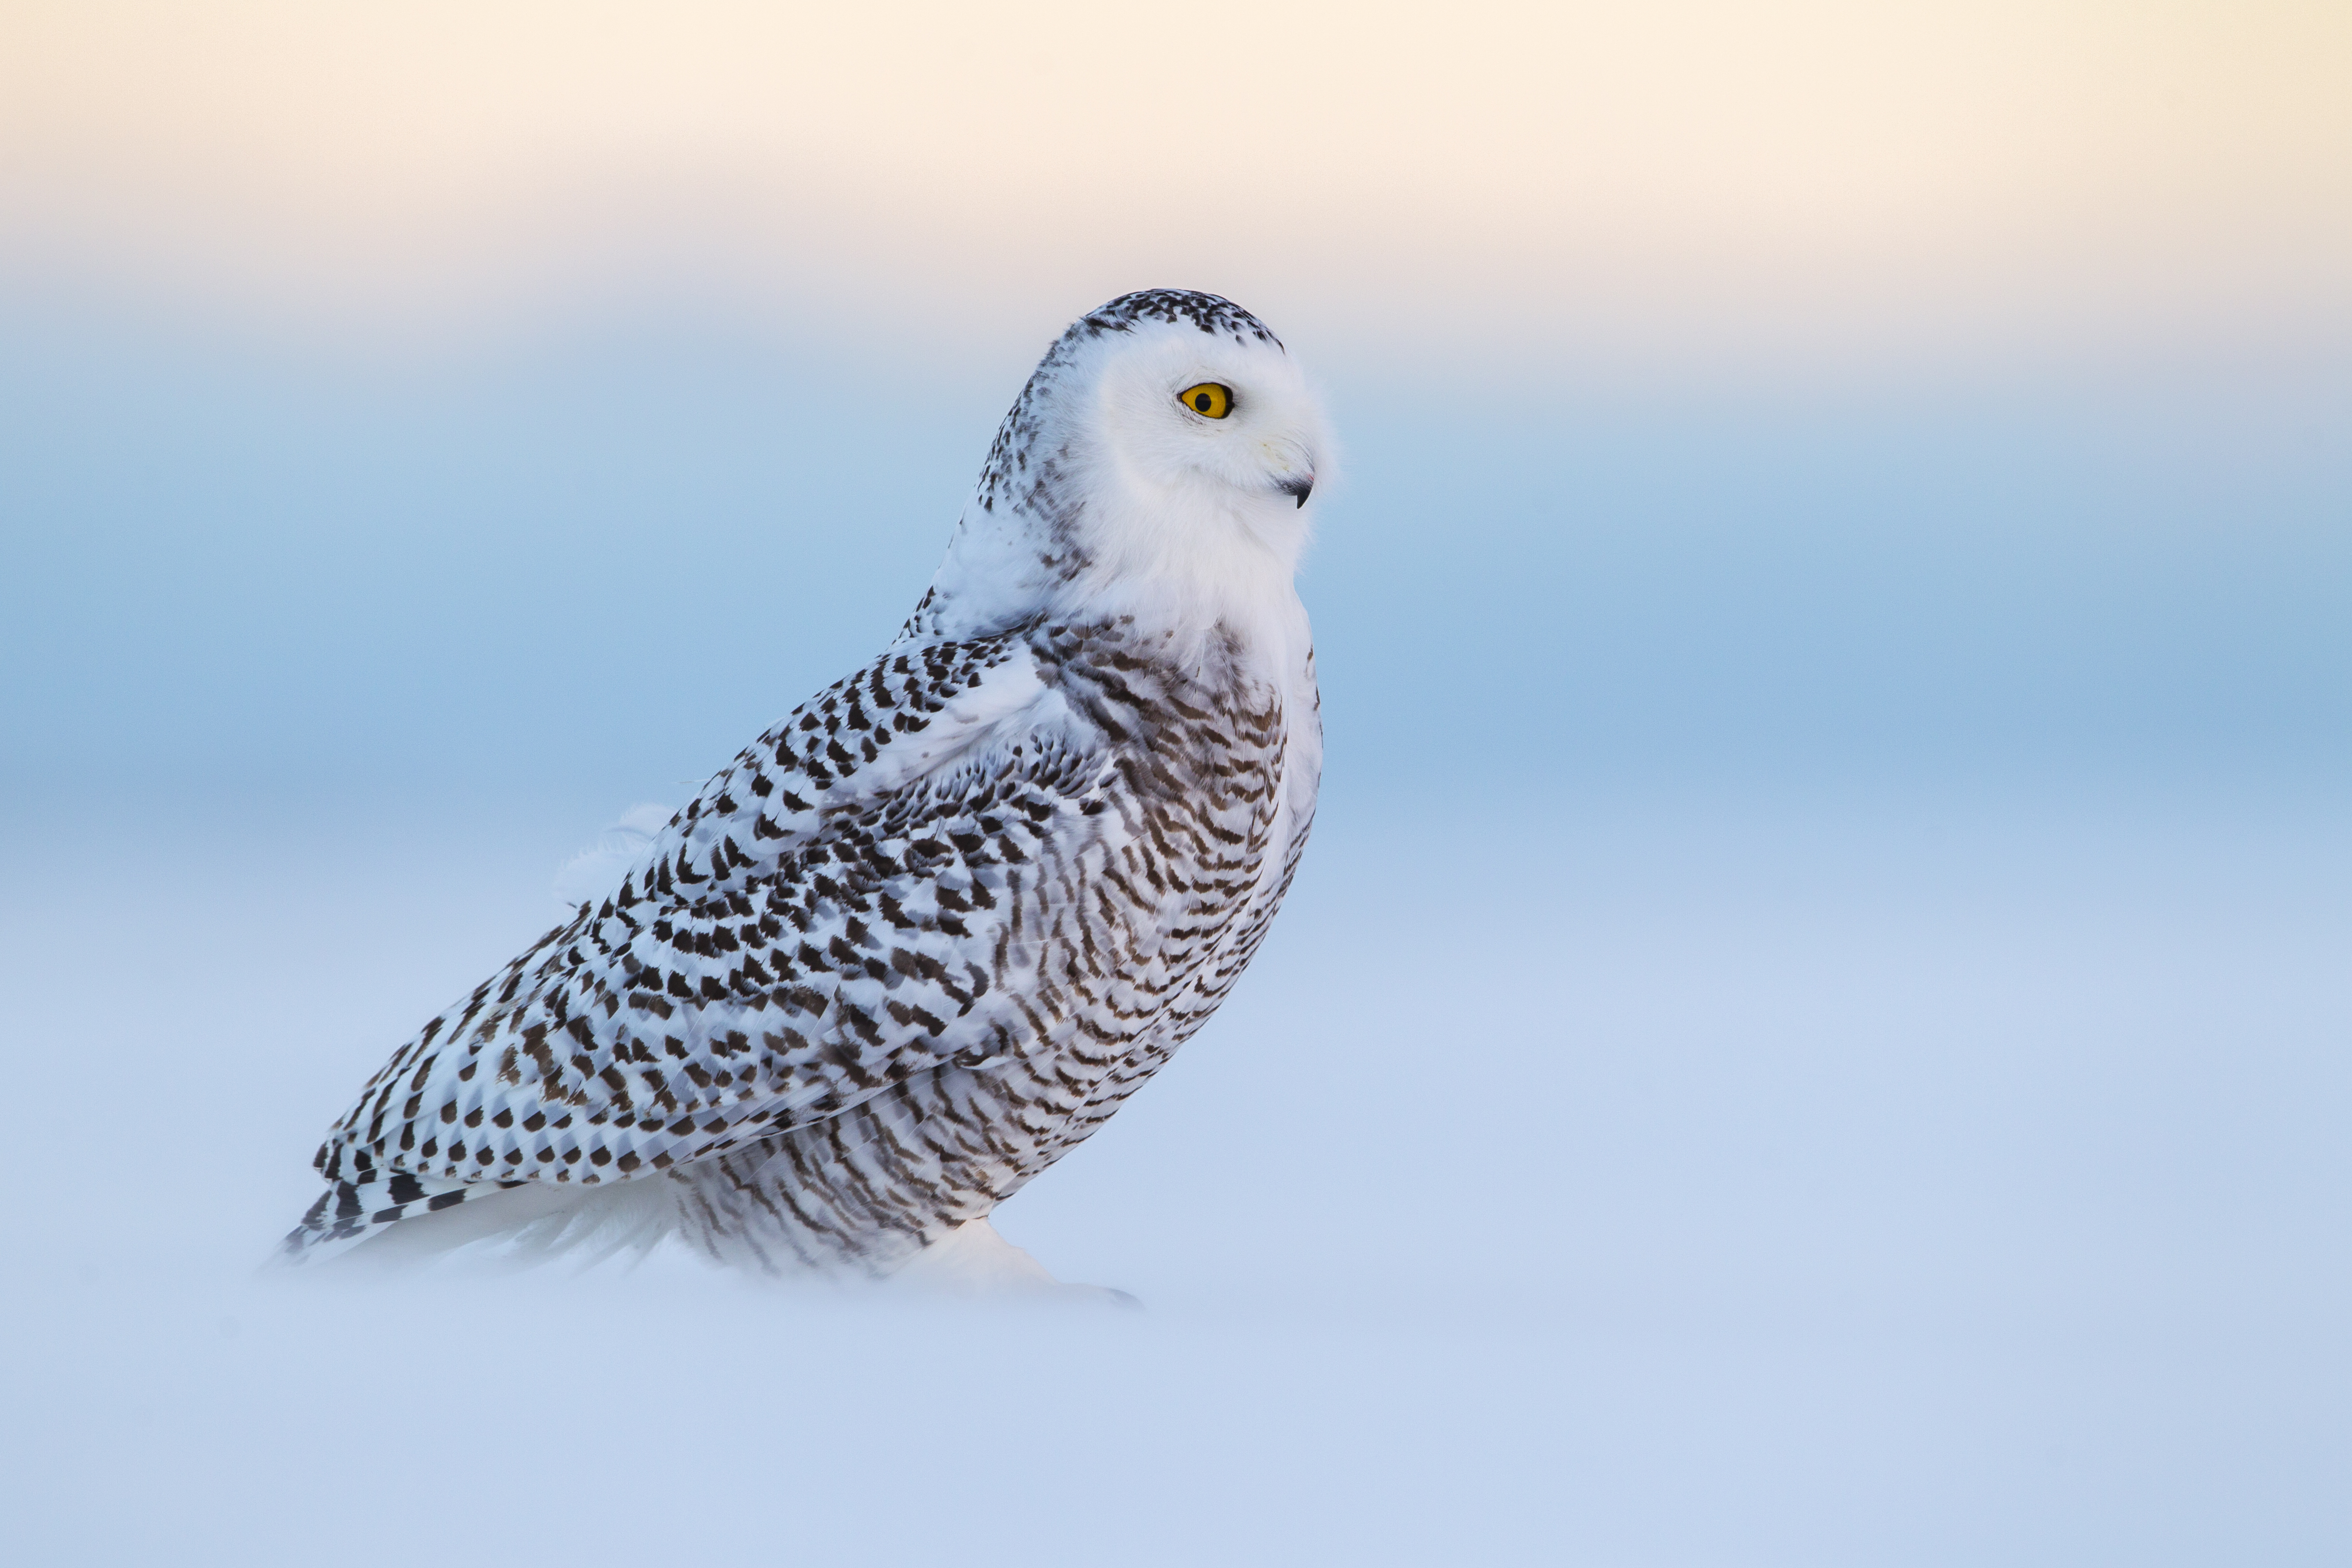 In blowing snow, a snowy owl carefully scans the horizon for competing owls. 2016 Mountaineers Books, Braided River Imprint (Paul Bannick) ONE TIME RIGHTS